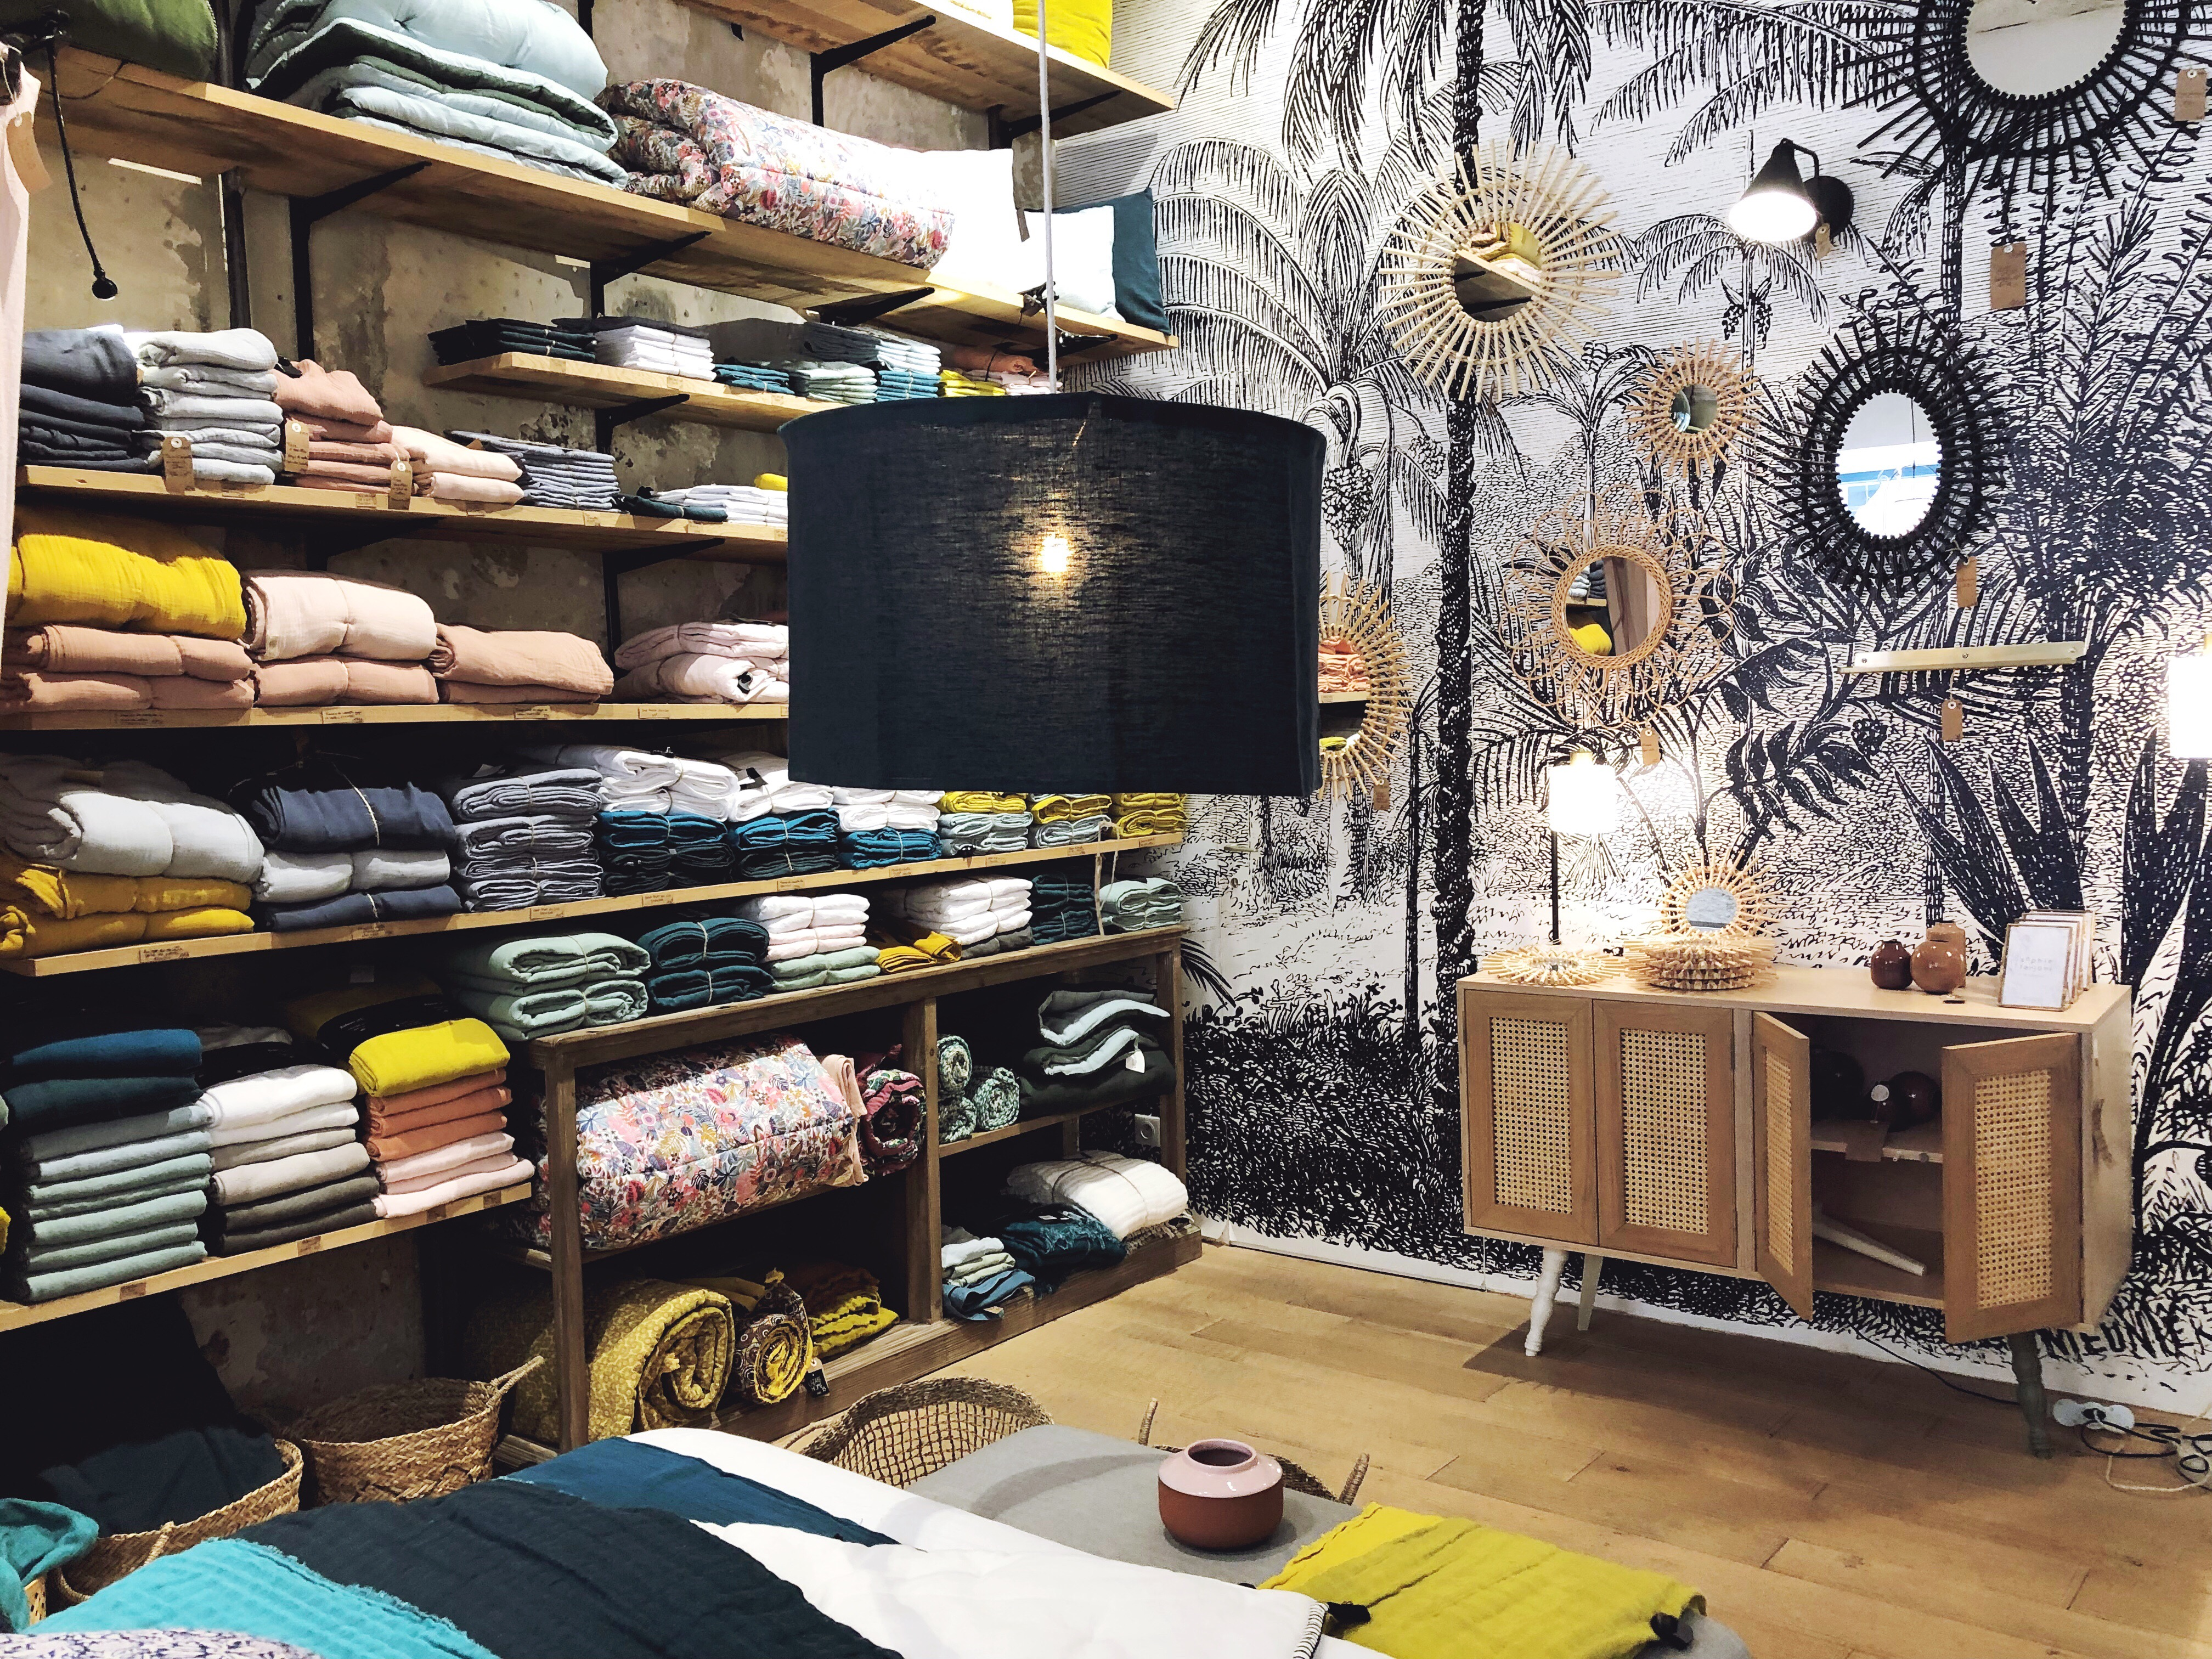 La Jolie Boutique Deco De Sophie Ferjani A Marseille Le So